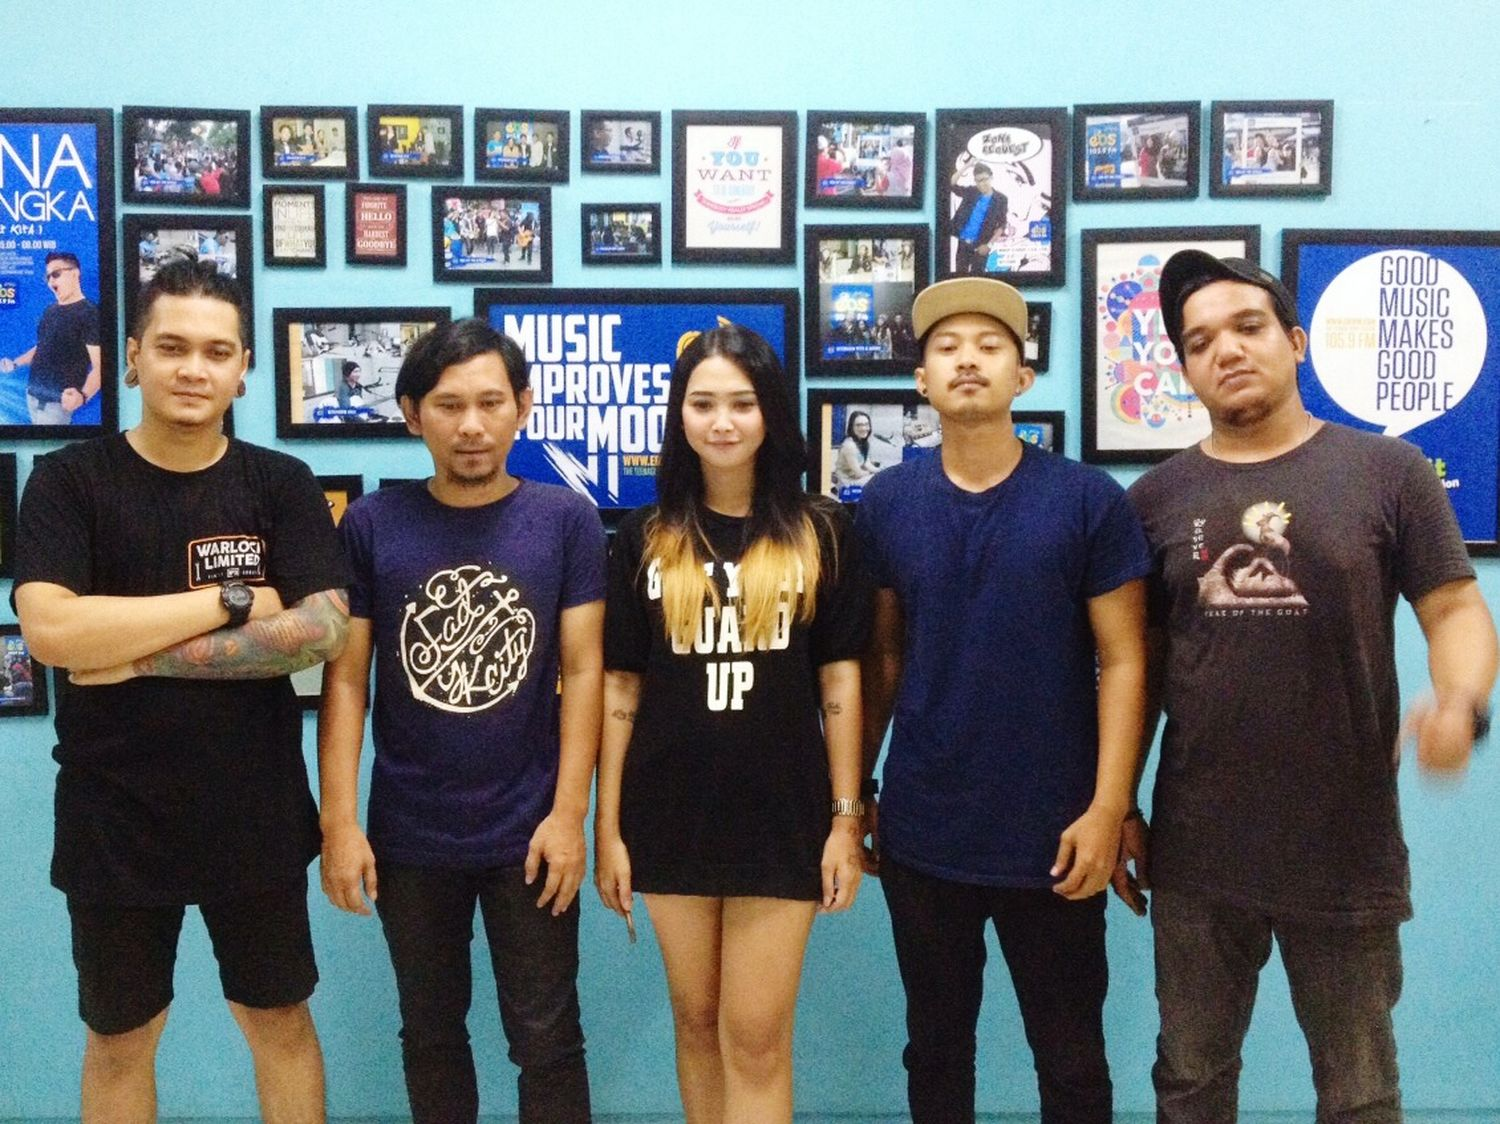 We are IGNORE band at EBS FM follow instagram @ignore_band and youtube : ignore band 😊😊😆 Music Is My Life Subscribe To My Youtube Musicians Photos Around You Surabaya City Cheese! Hello World Hi! Asiangirl Taking Photos Radiotalkshow Live Music Clothingbrand Youtube Bands Backstage Asiangirlsrock Check This Out